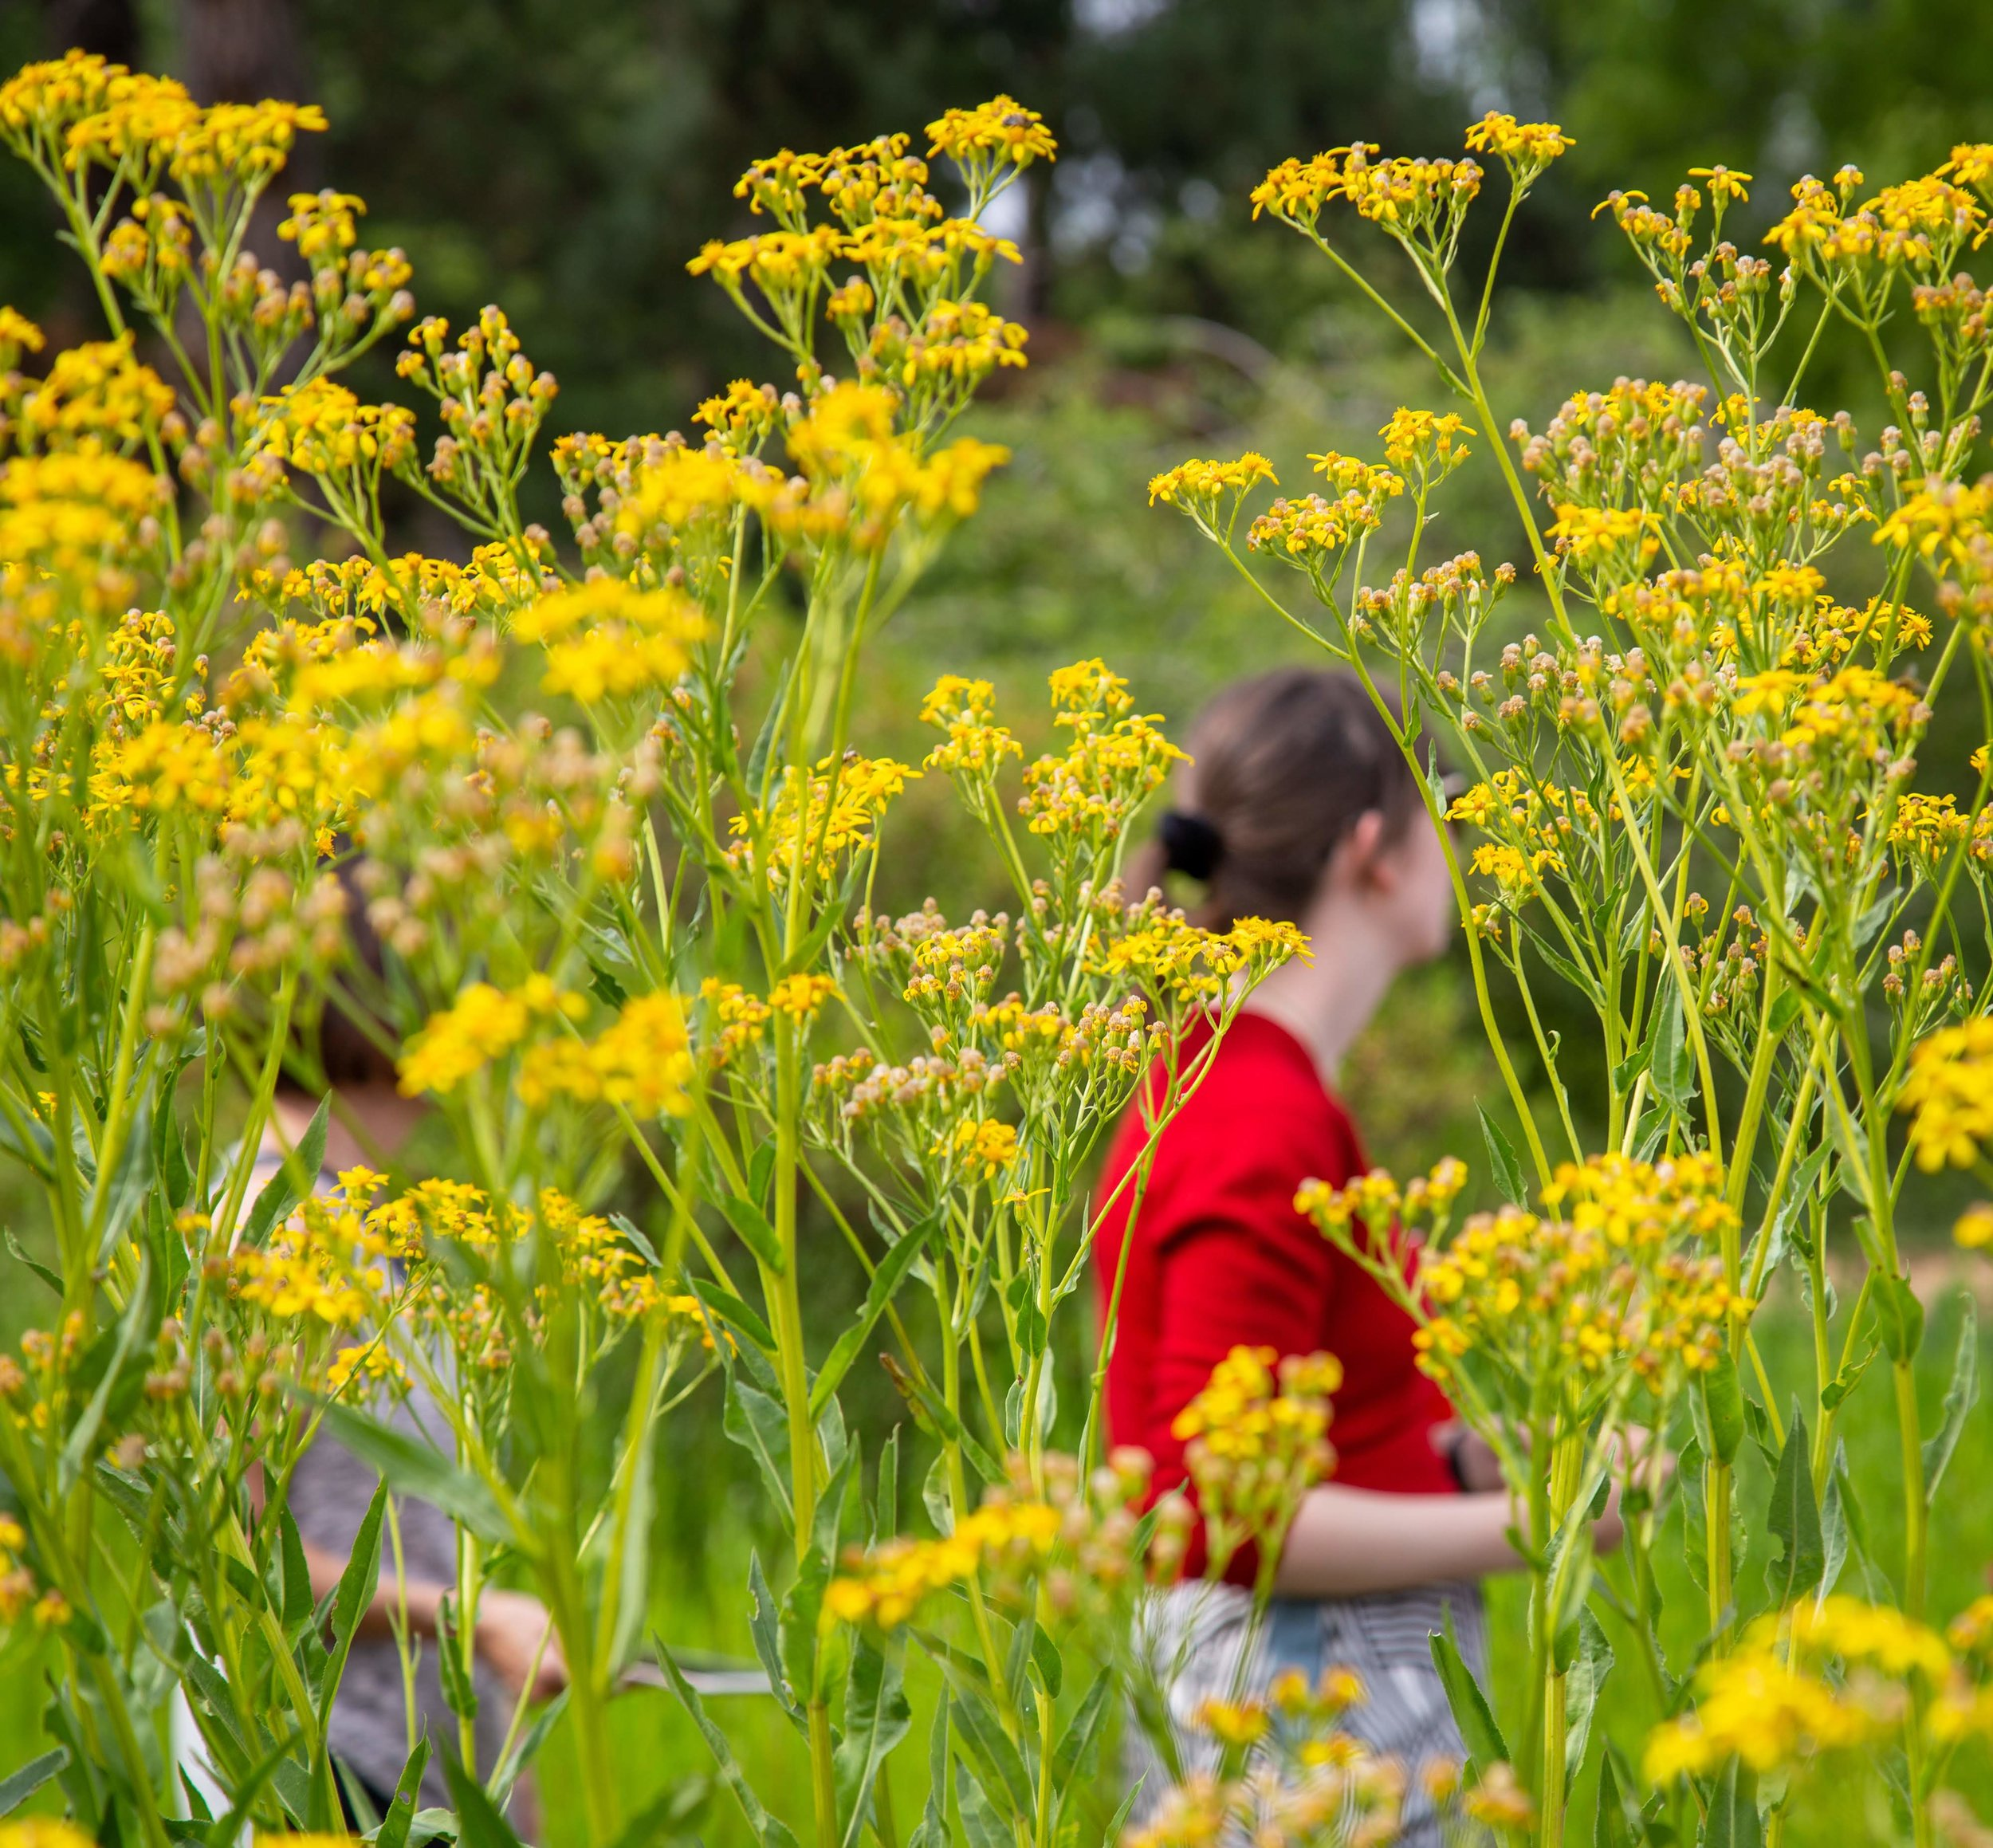 Botanic Gdn yellow flowers + red shirt **.jpg